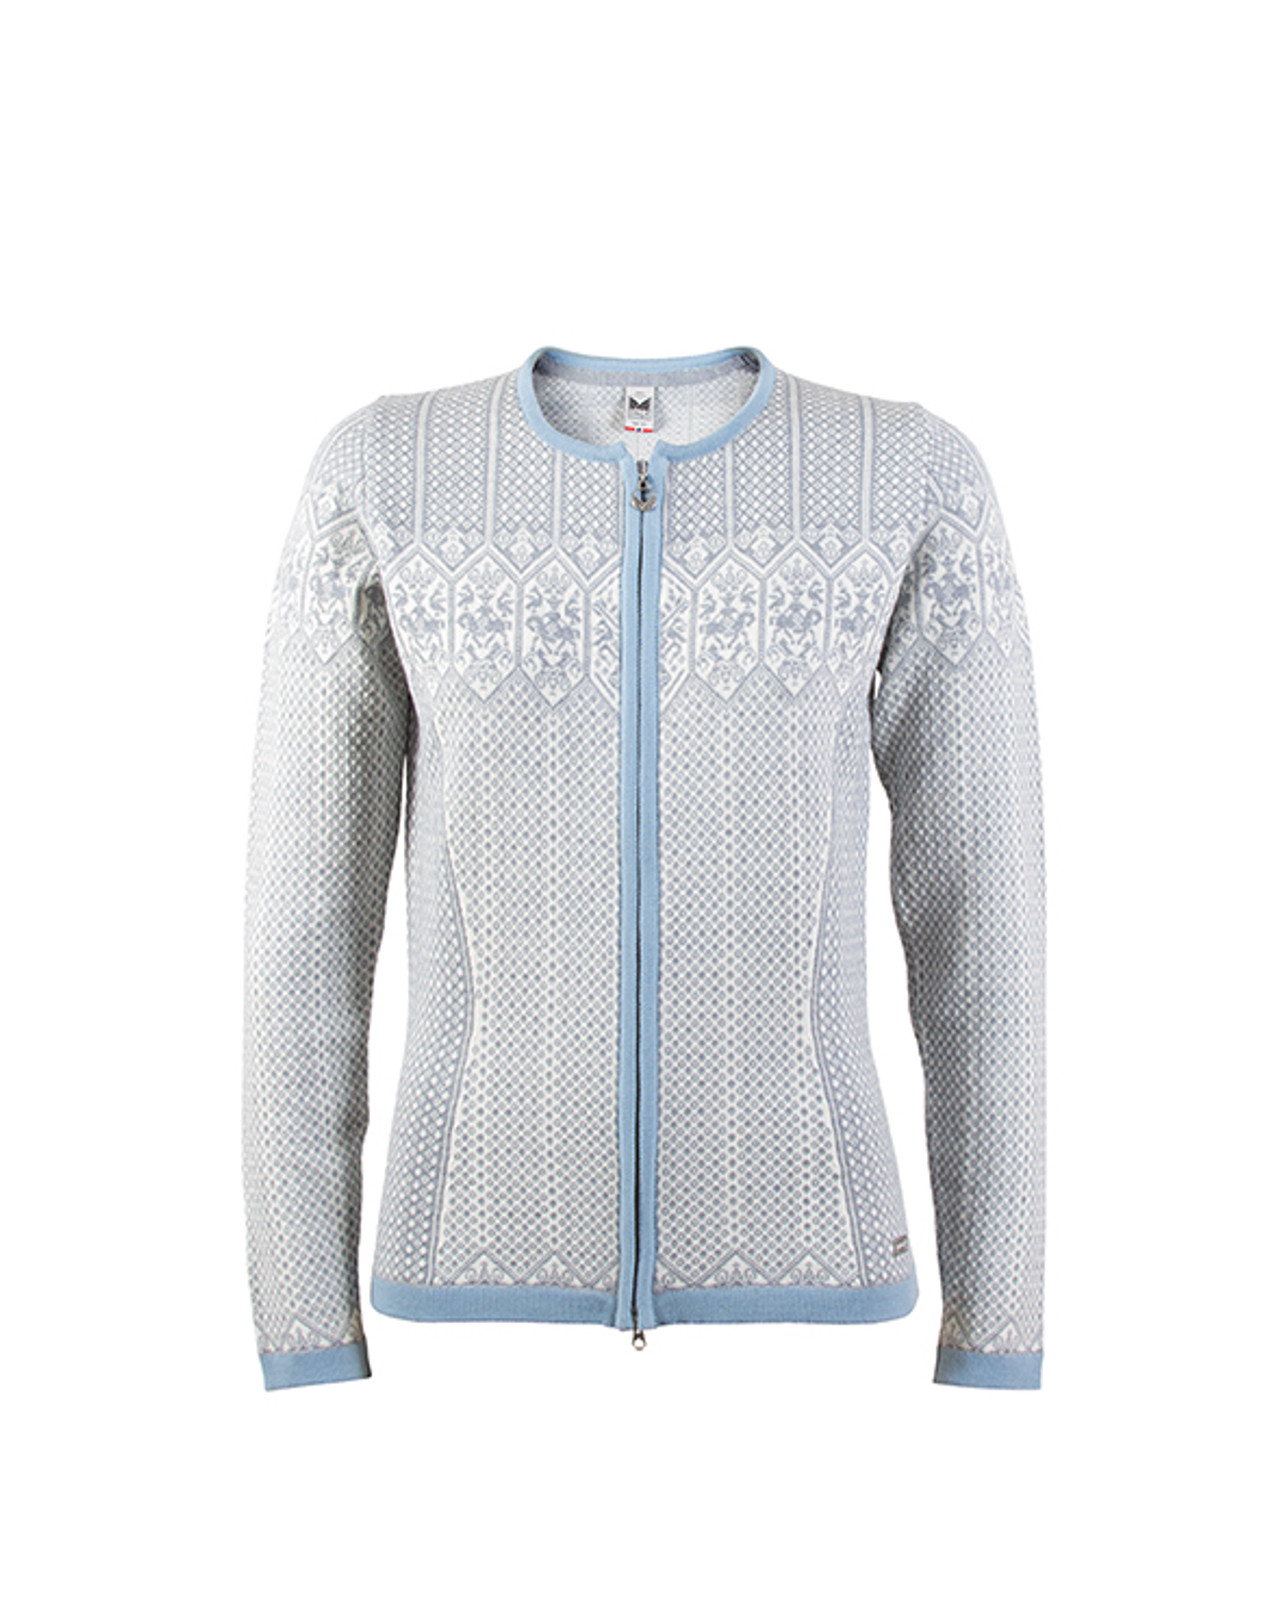 Dale of Norway, Sigrid cardigan, ladies in Grey Mel/Off White/Ice Blue, 82071-E, on sale at The Nordic Shop